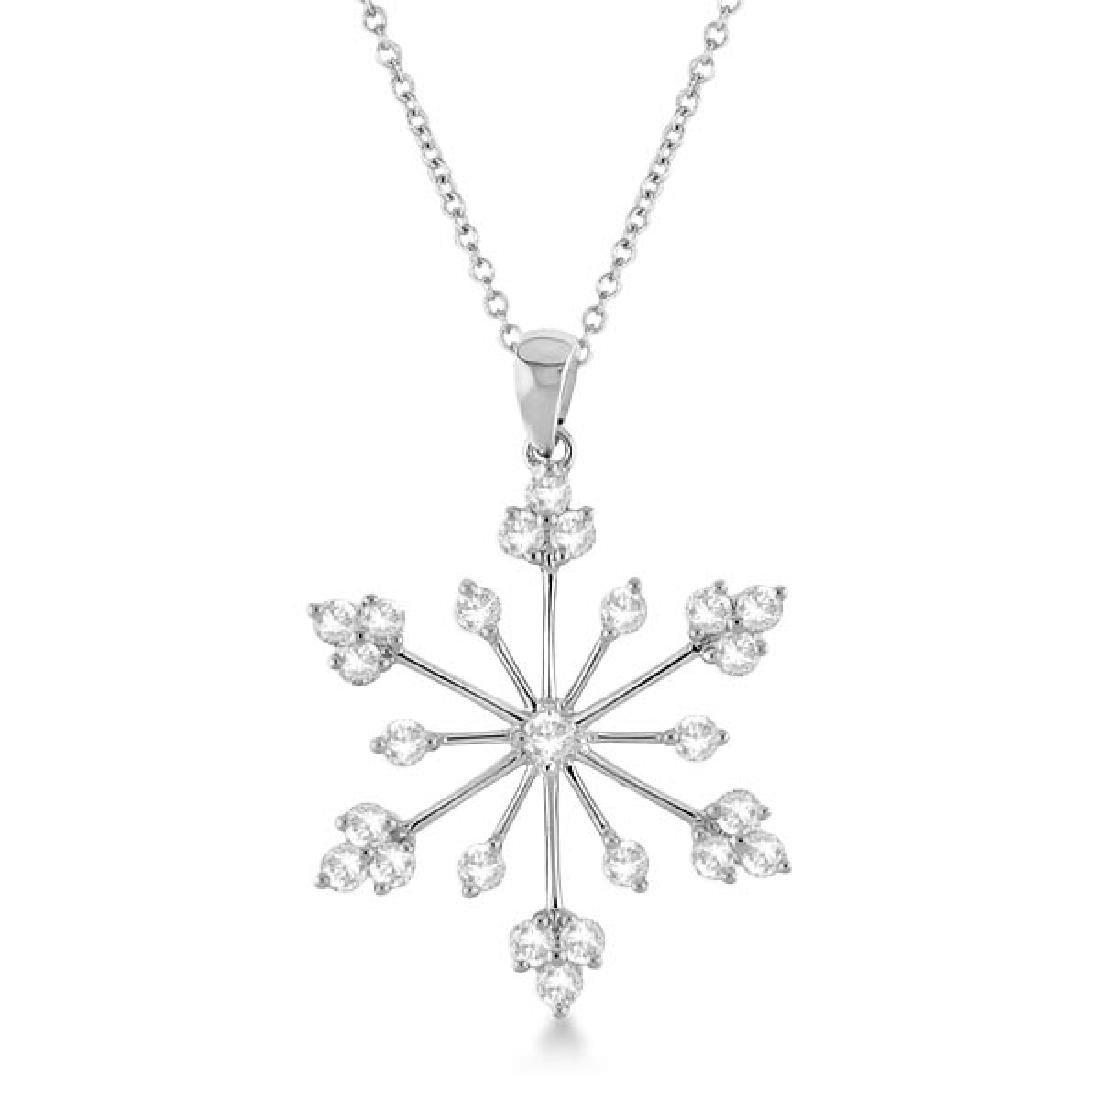 Snowflake Shaped Diamond Pendant Necklace 14k White Gol